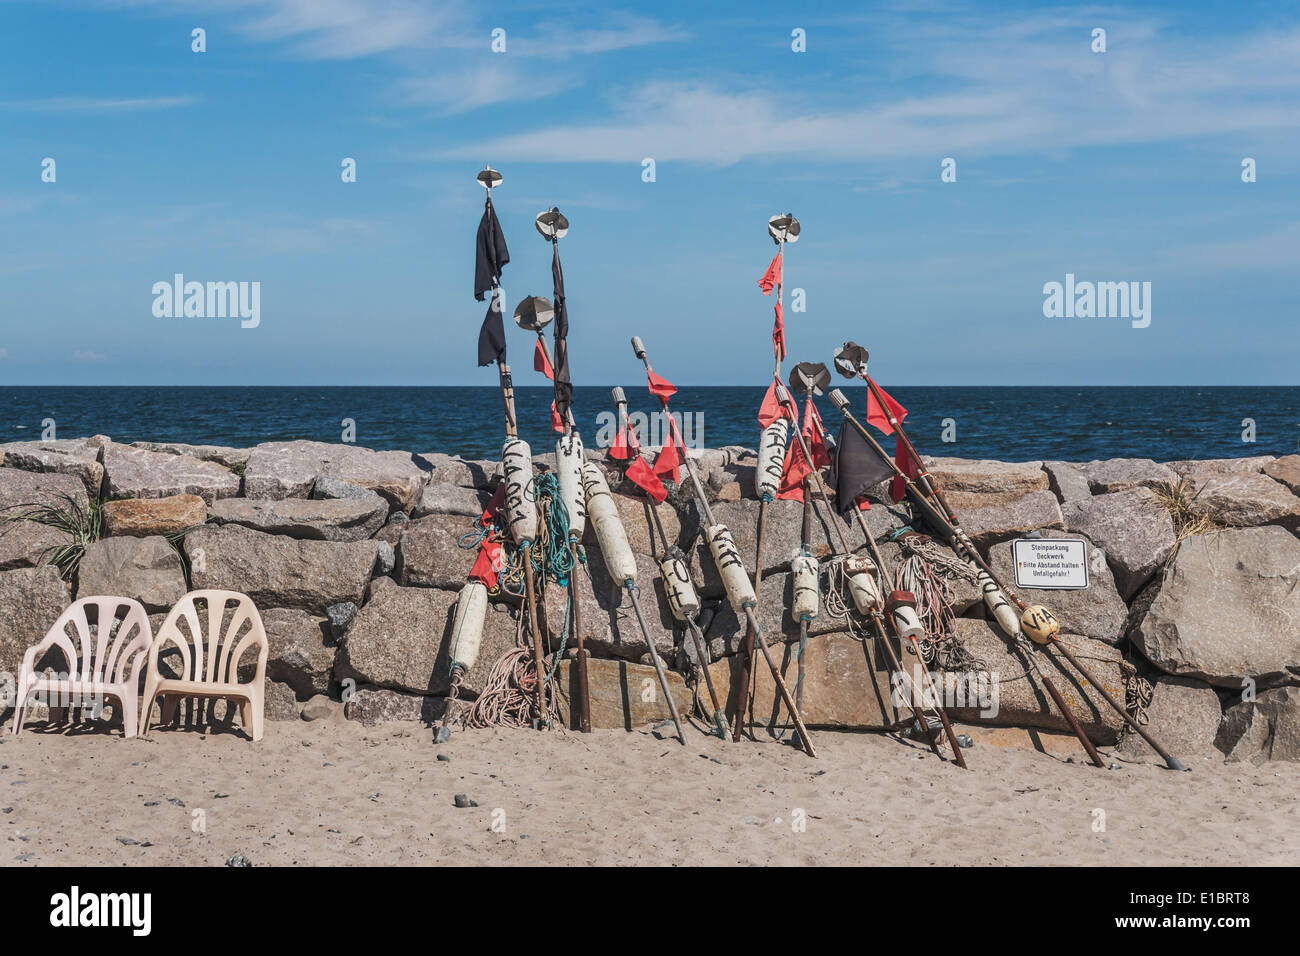 At the mole in the harbor of Vitt are buoys with red and black flags, Ruegen Island, Mecklenburg-Western Pomerania, Stock Photo